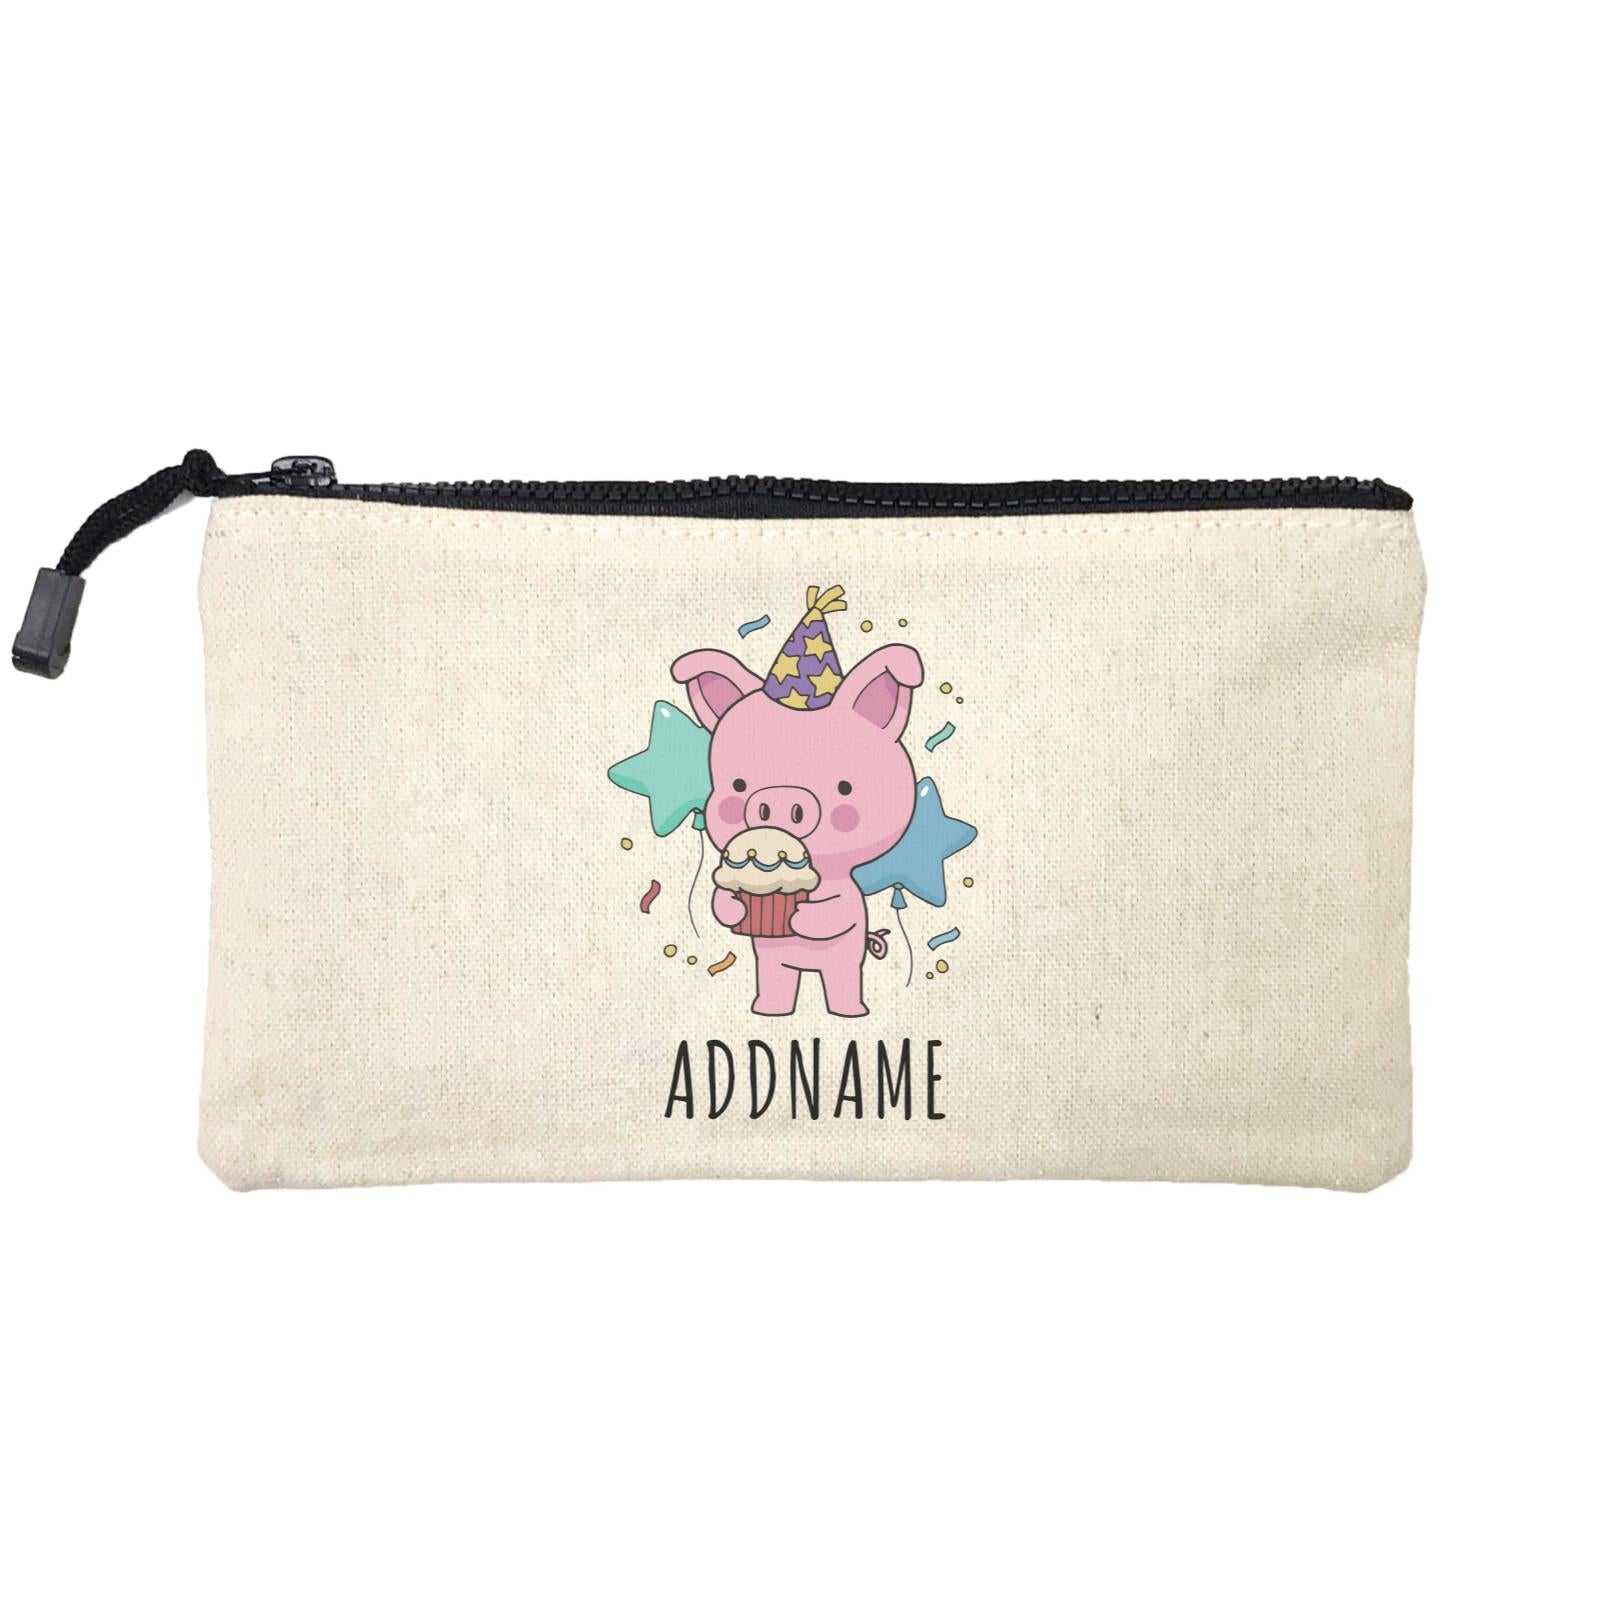 Birthday Sketch Animals Pig with Party Hat Eating Cupcake Addname Mini Accessories Stationery Pouch